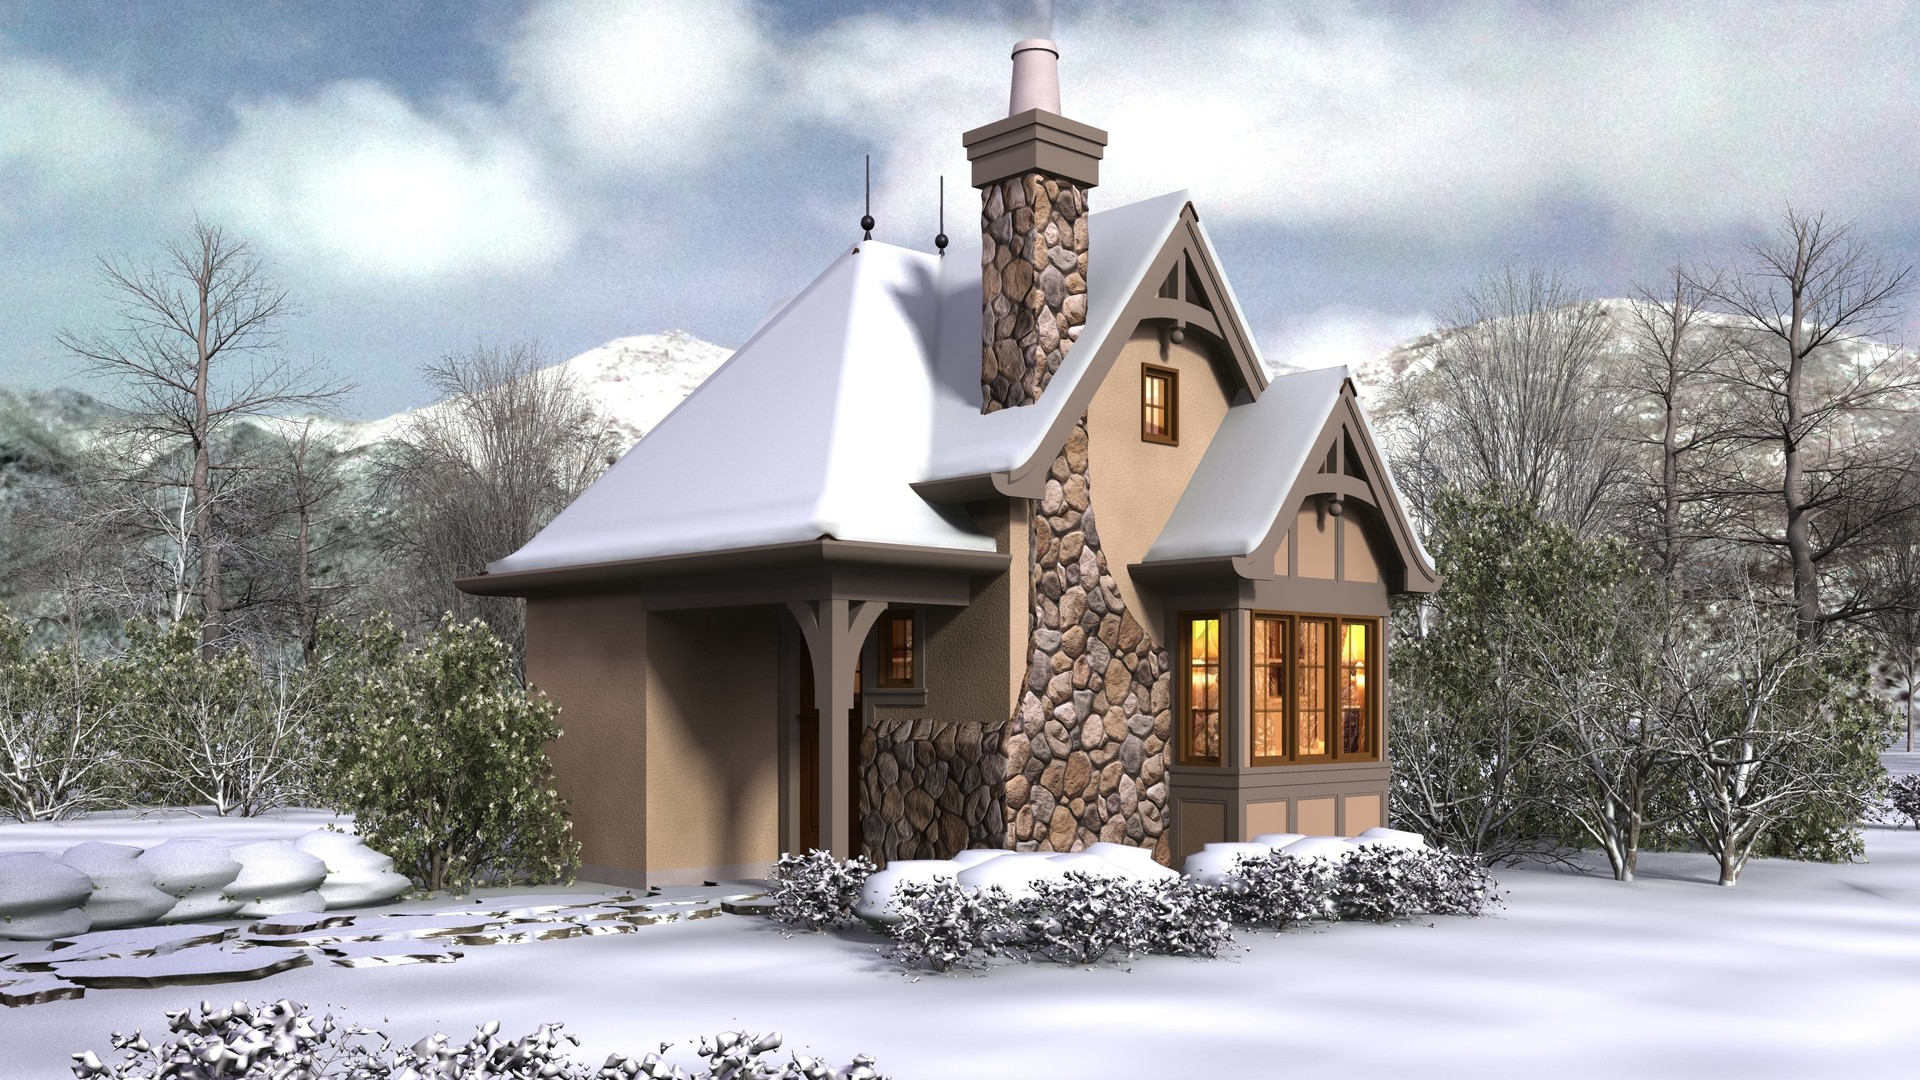 Plans For Building A New House Cottage House Plan 5033 The Bucklebury: 300 Sqft, Beds